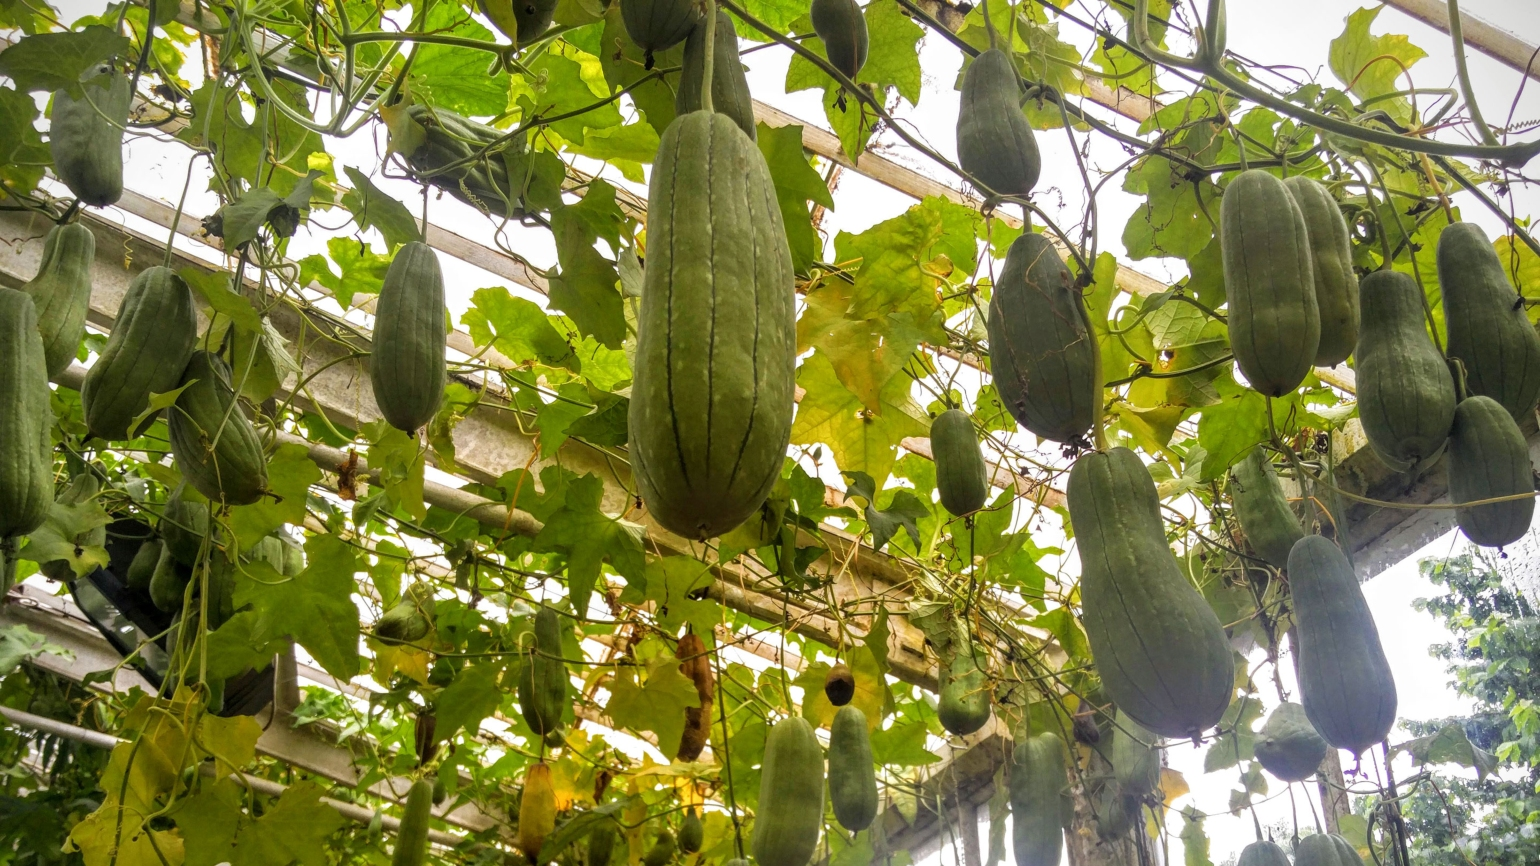 Gourds hanging in the Waterlily House